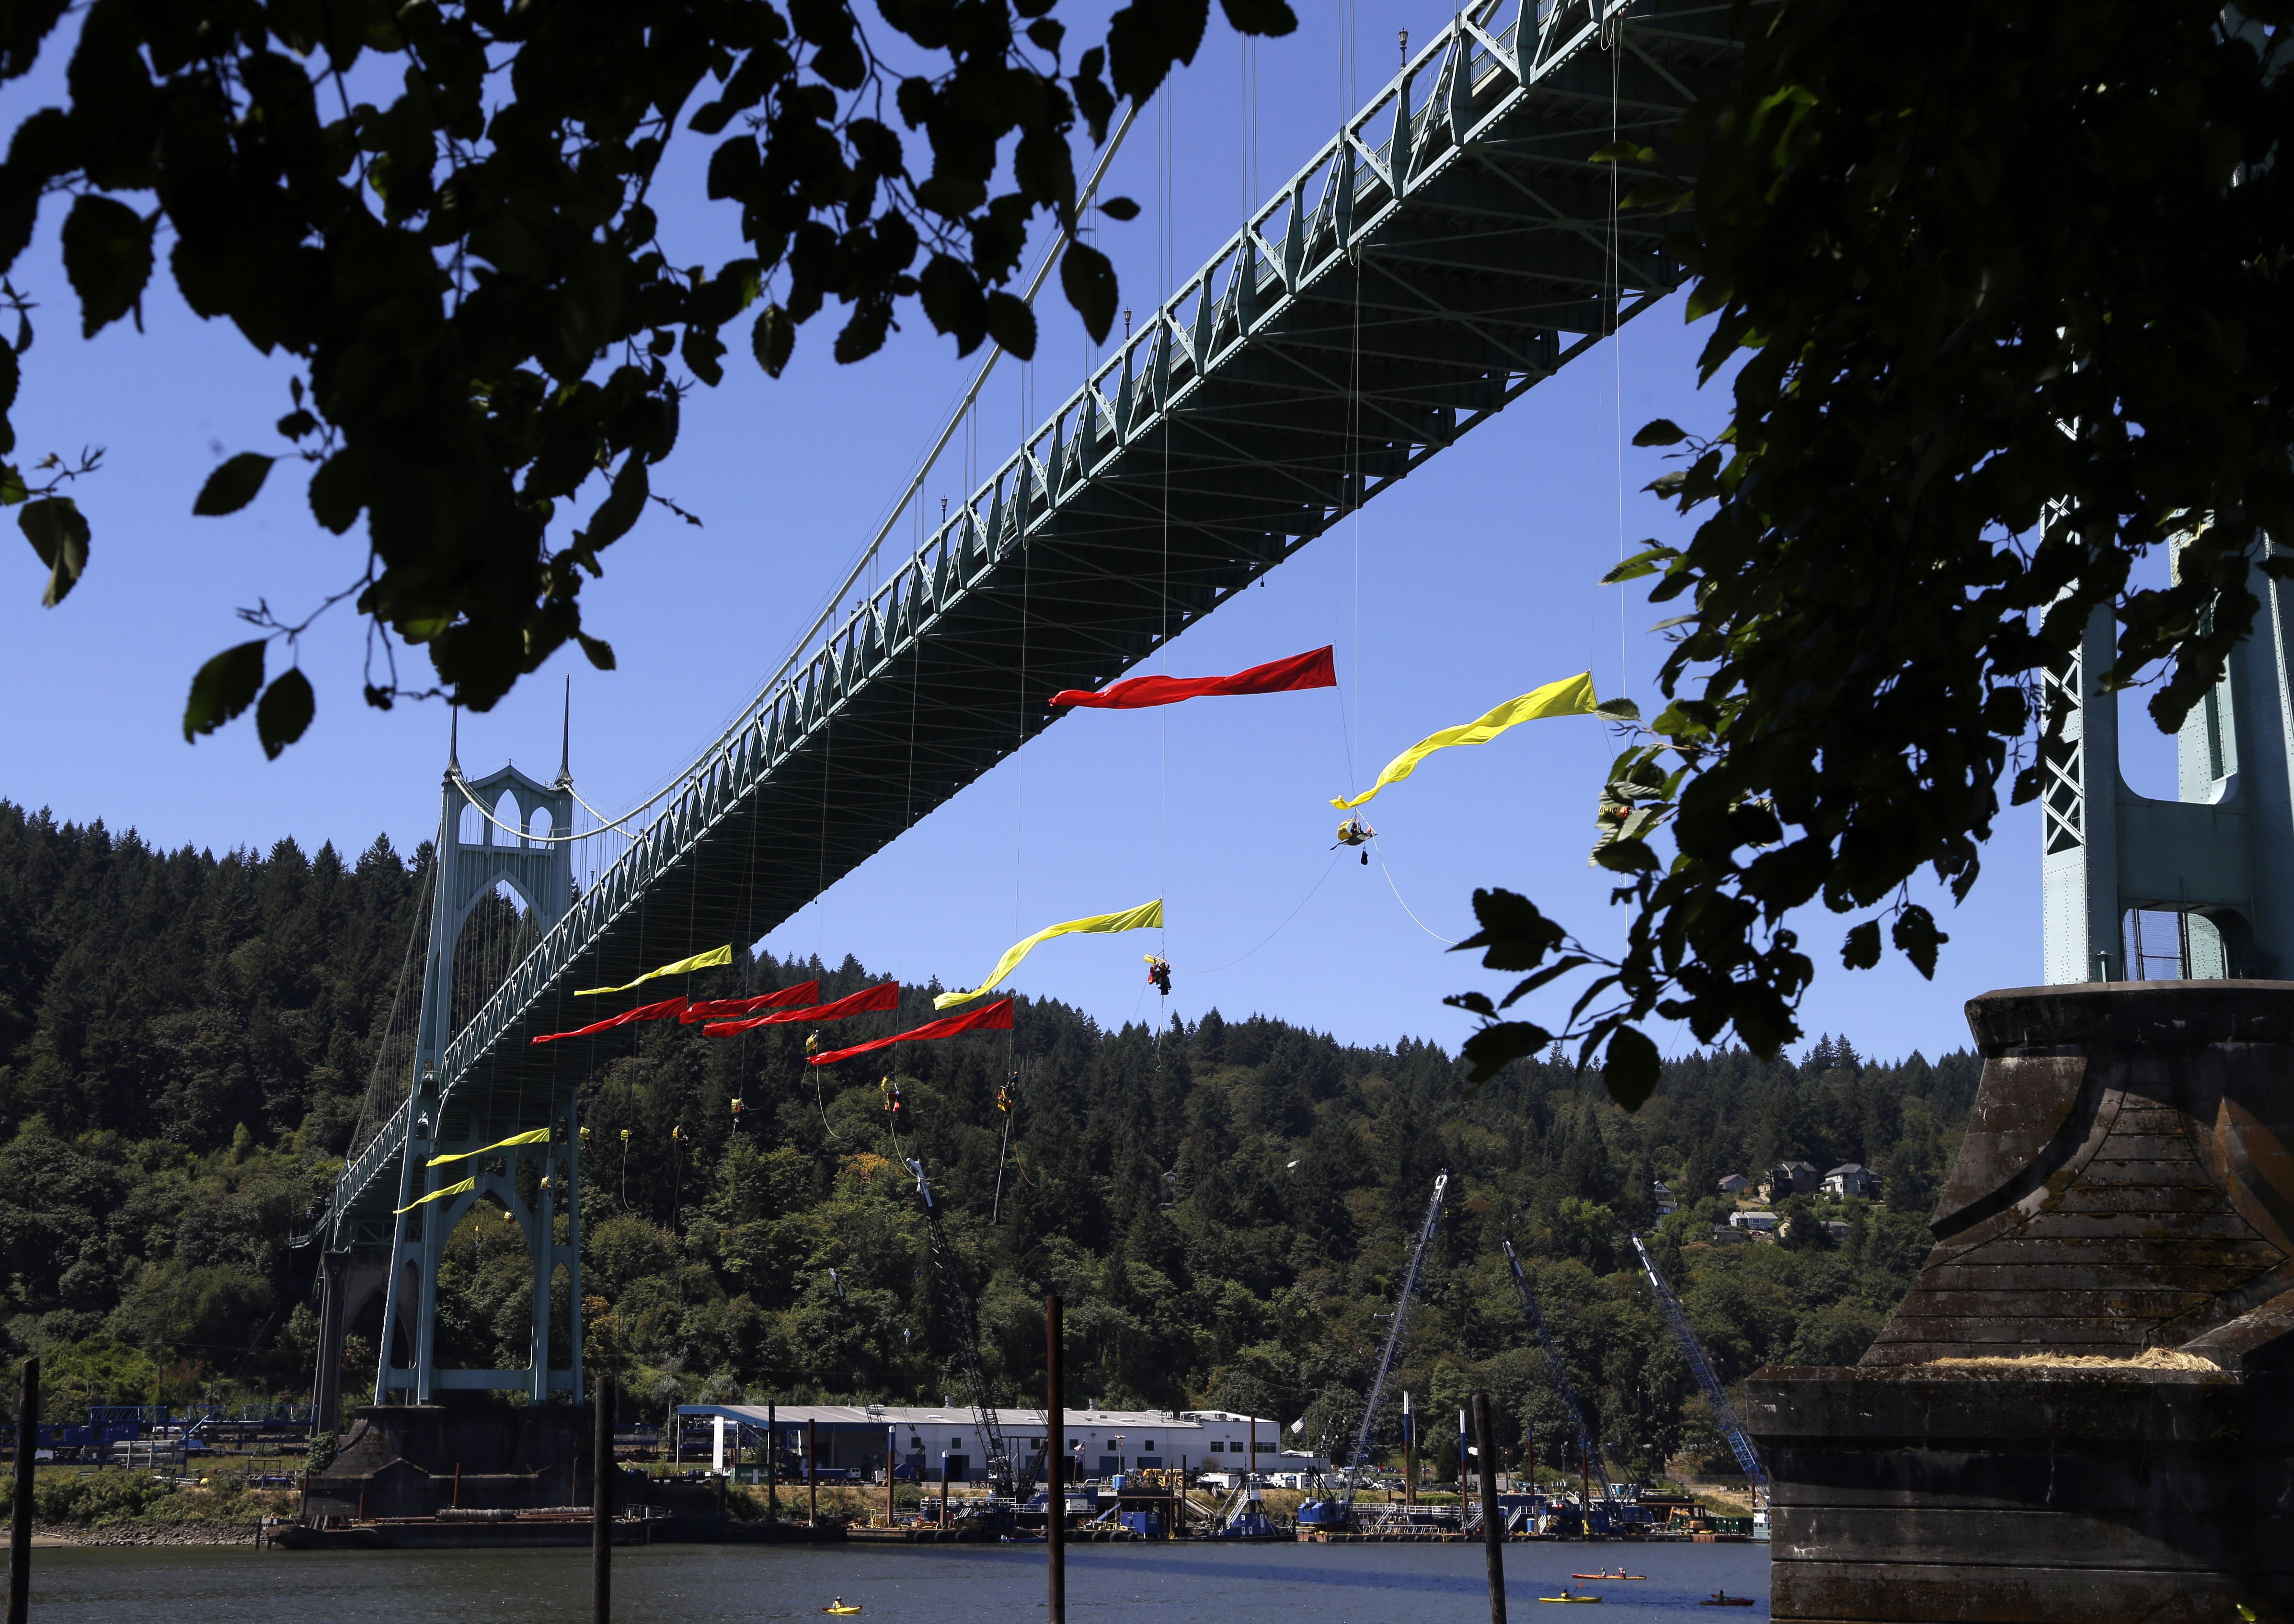 Activists unfurl colored banners while hanging from the St. Johns bridge in Portland on July 29, 2015, to protest  the departure of Royal Dutch Shell PLC icebreaker Fennica.